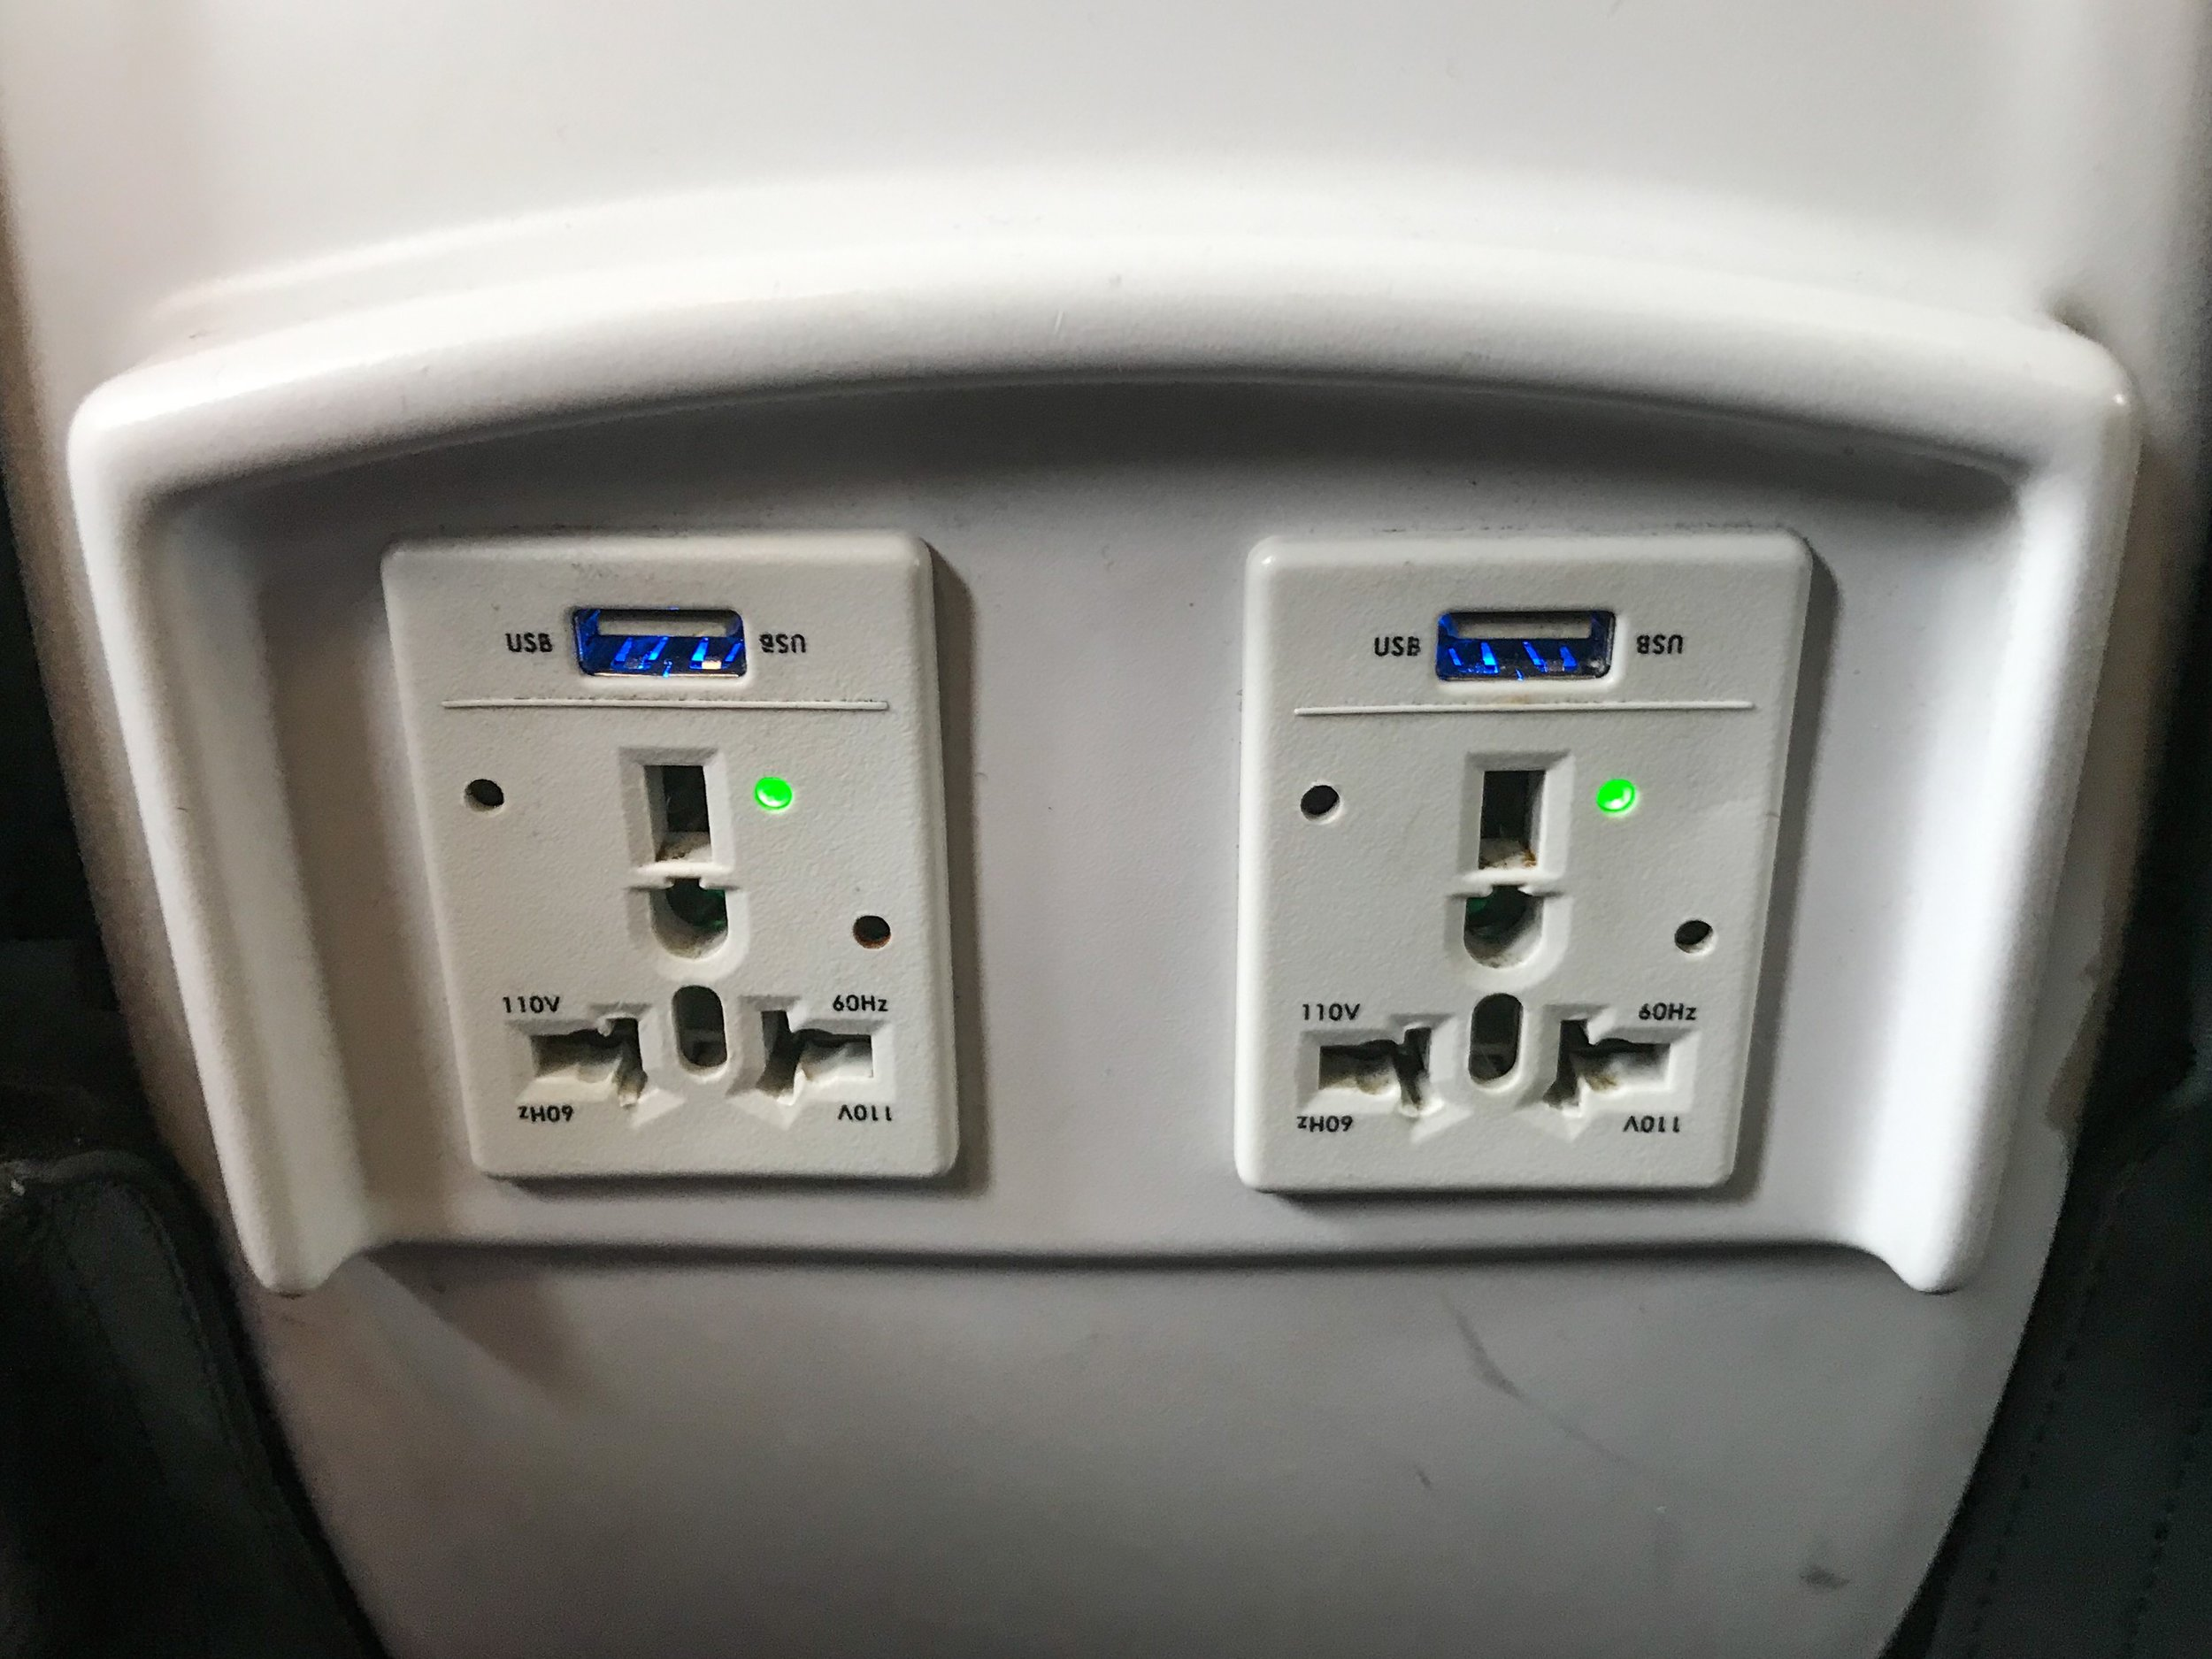 There are two 110V universal style power outlets and USB power ports in each row.